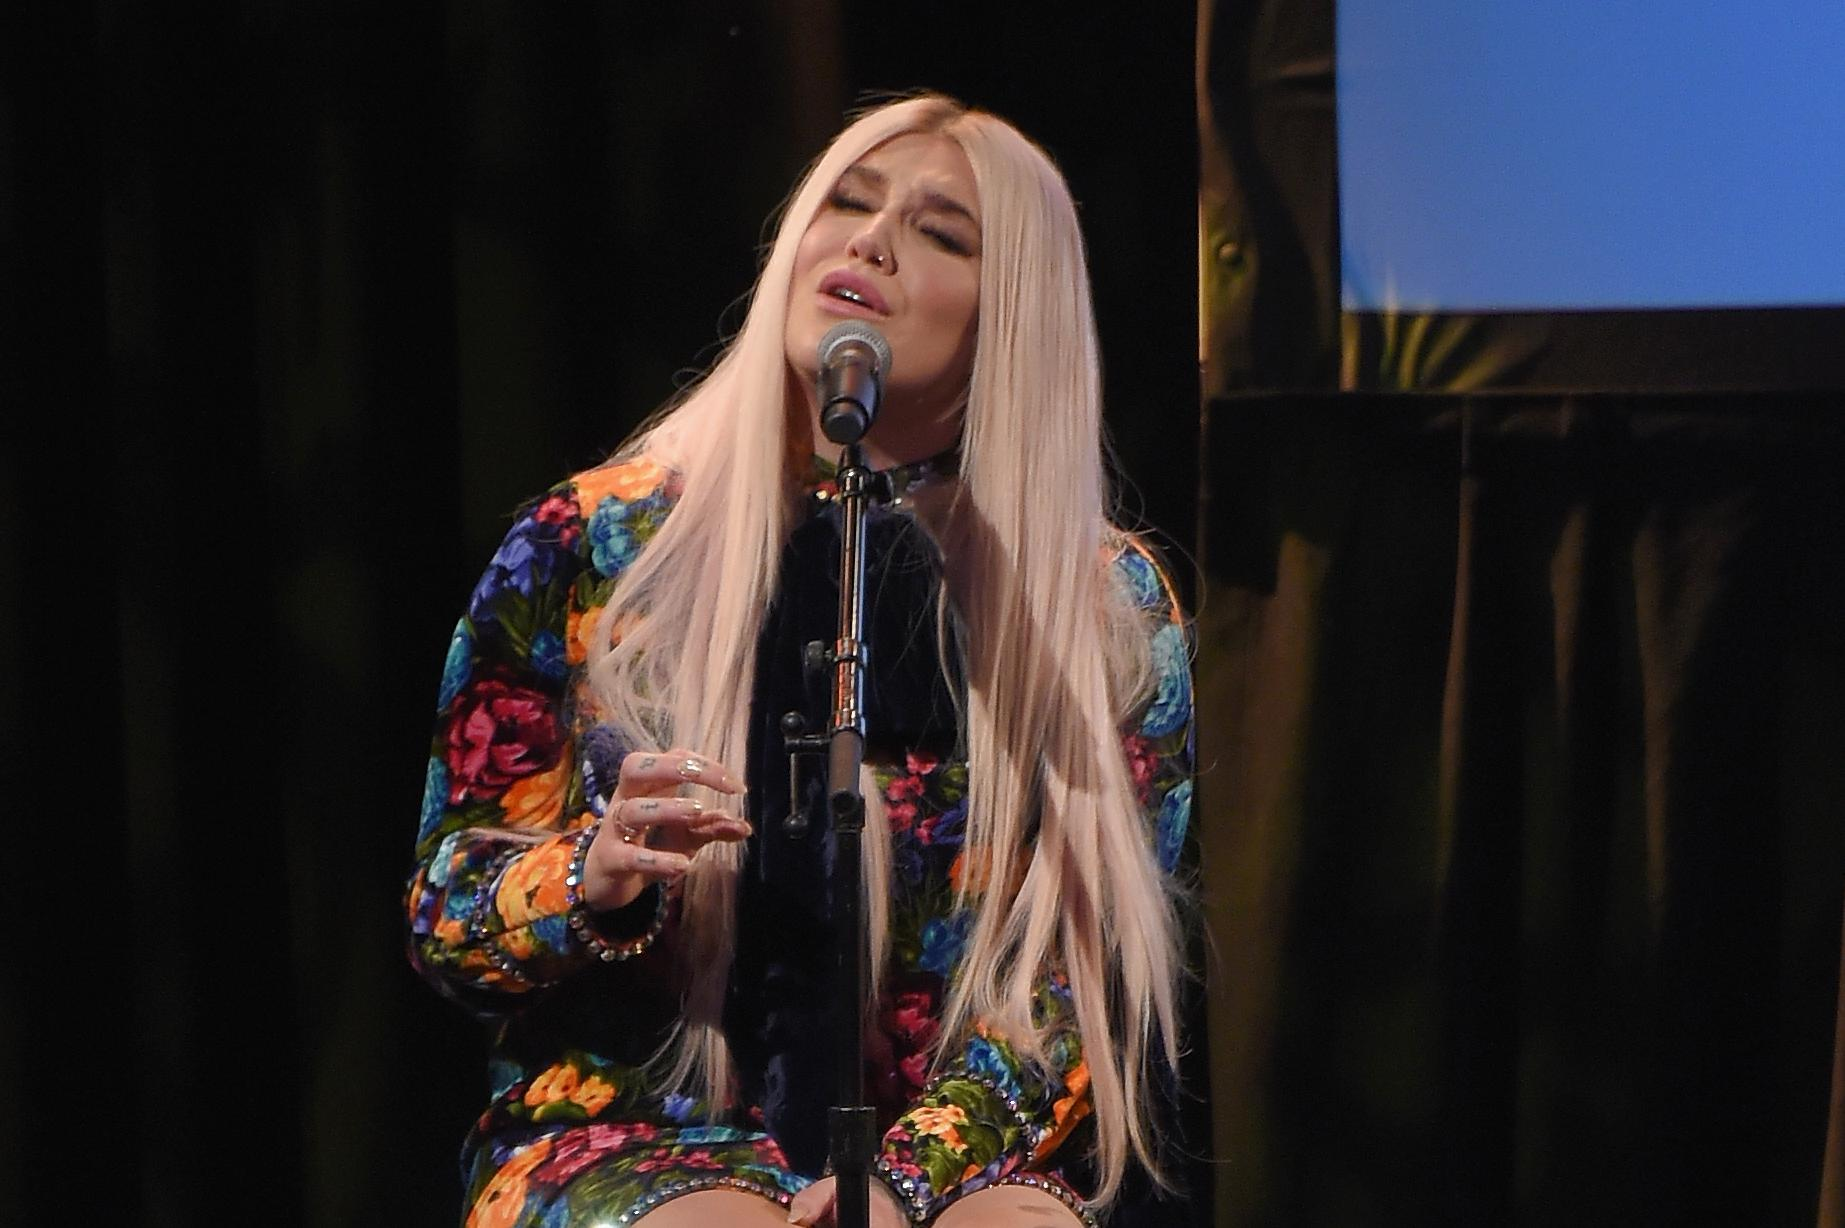 Musician Kesha performs onstage at the Country Music Hall of Fame and Museum's 'All for the Hall' Benefit on February 12, 2018 in New York City.